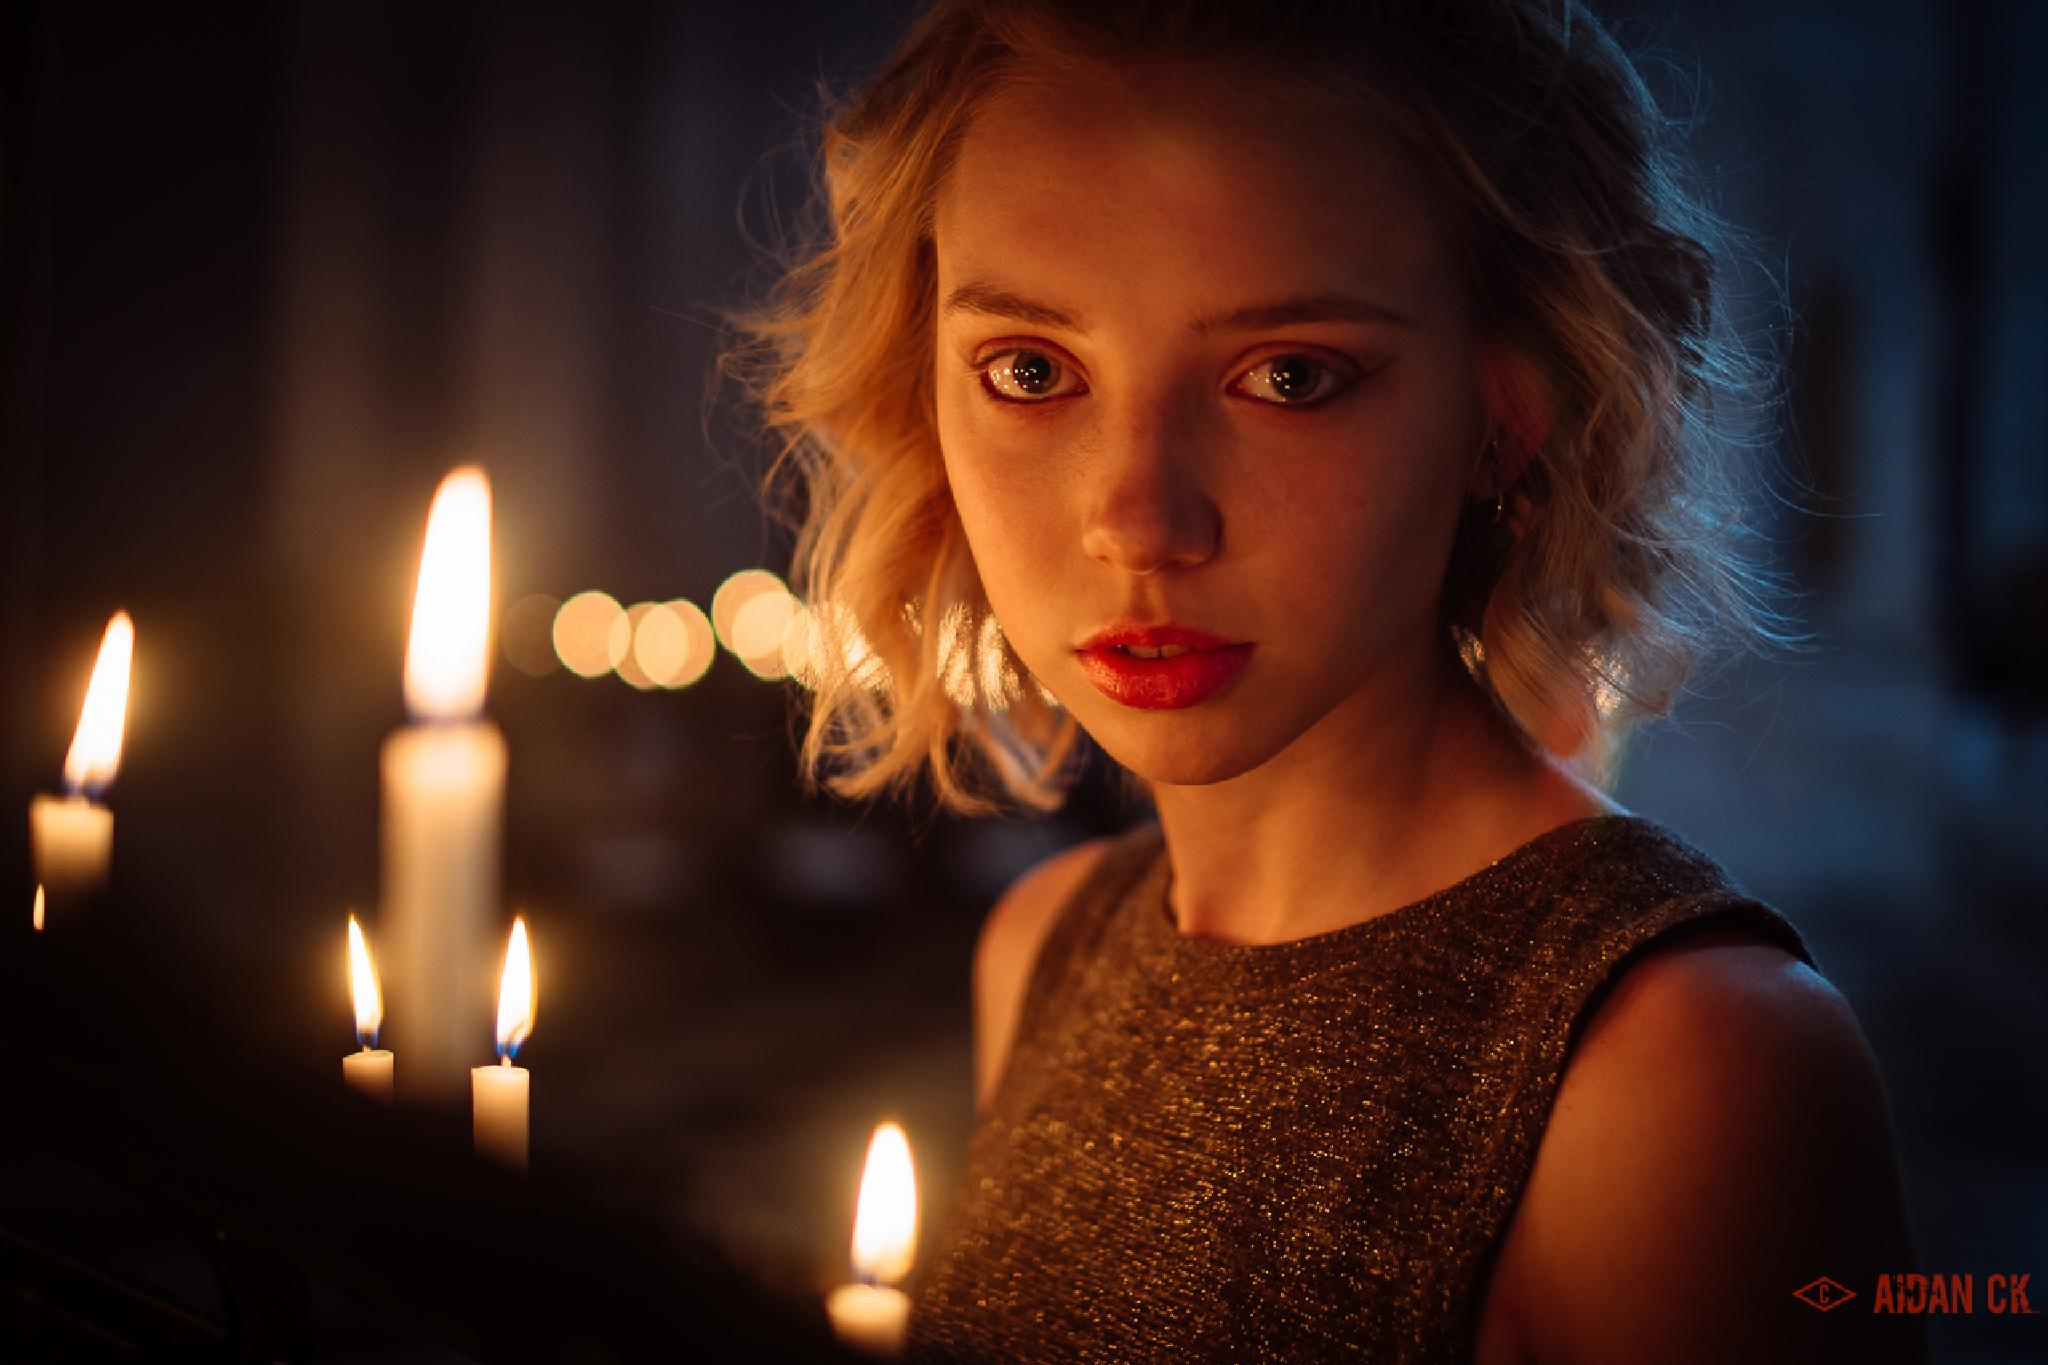 Portrait with candlelight by AidanCK